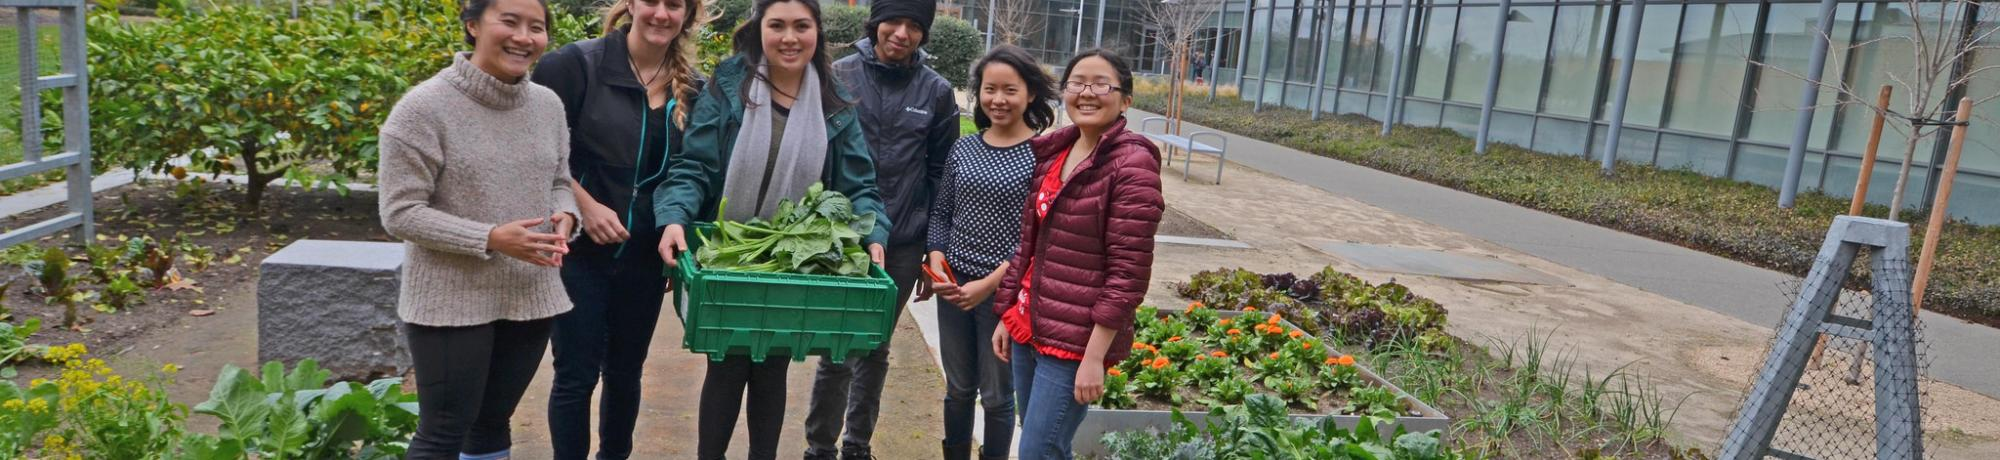 Image of students preparing to donate their Good Life Garden harvest to The Pantry.